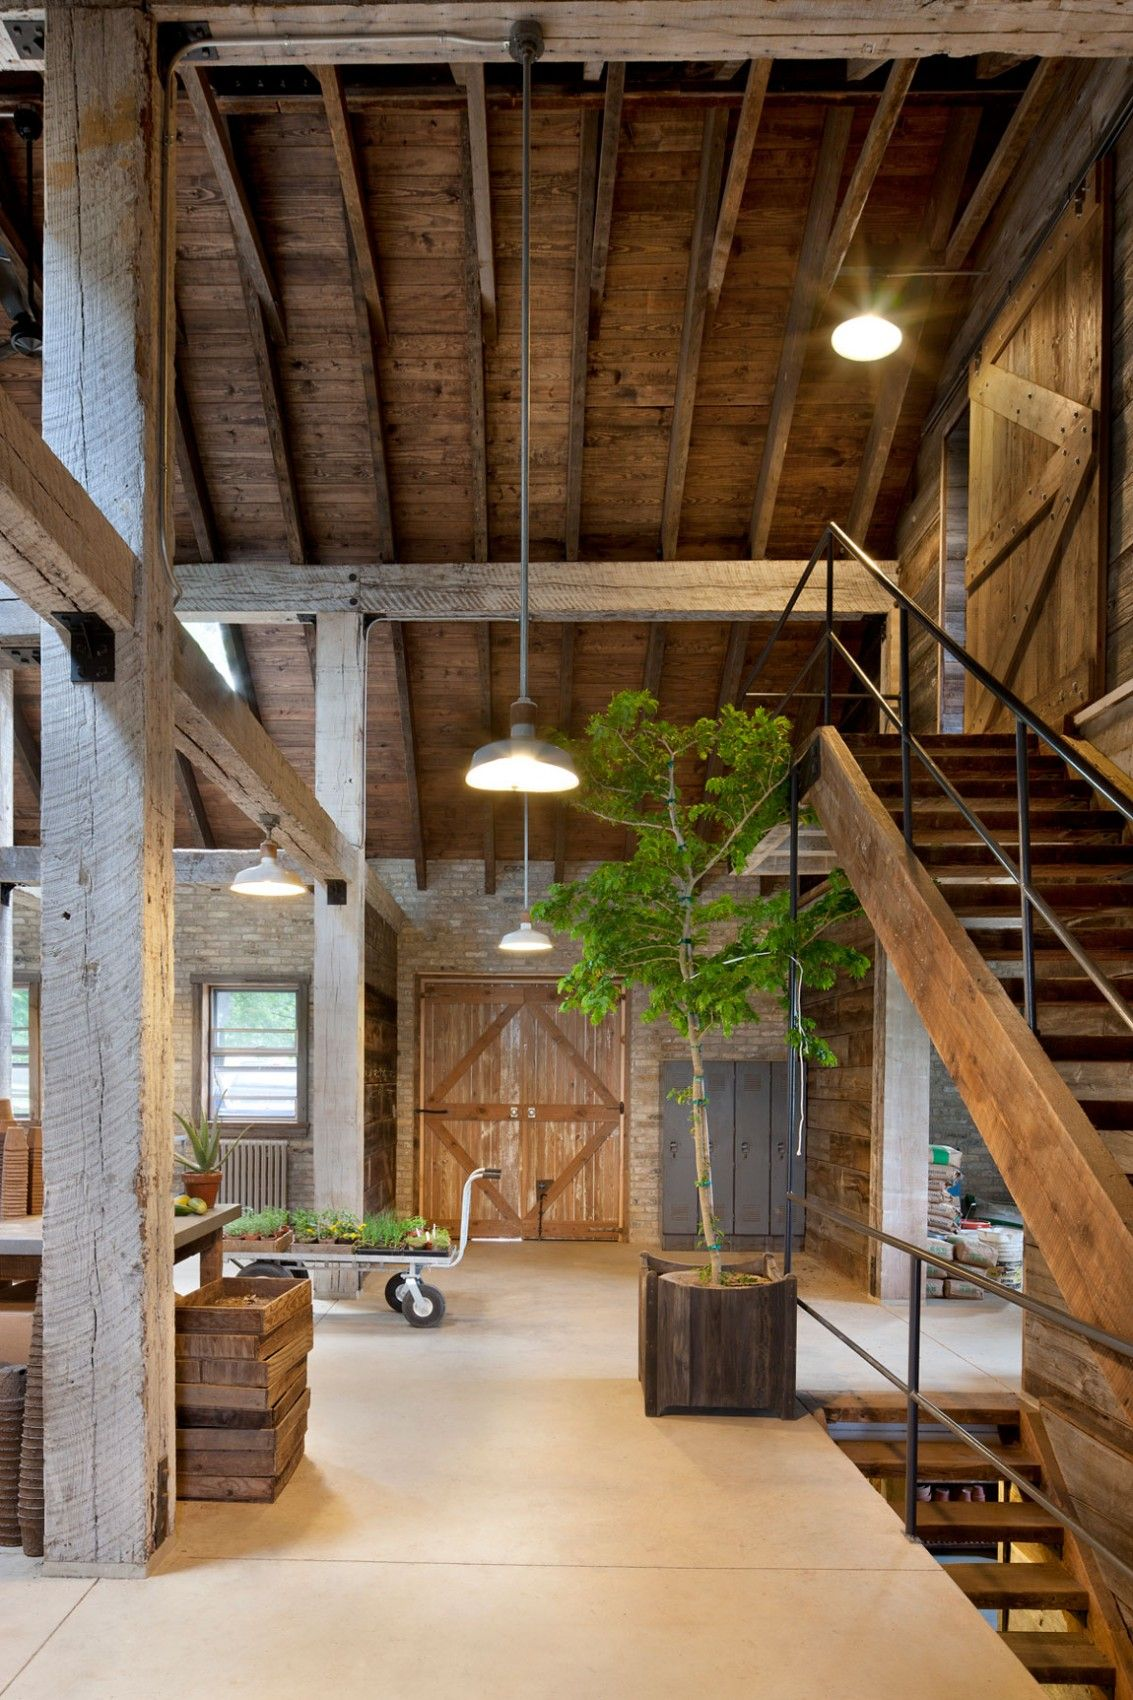 Barn House Love Interiors Rural house Pennsylvania and